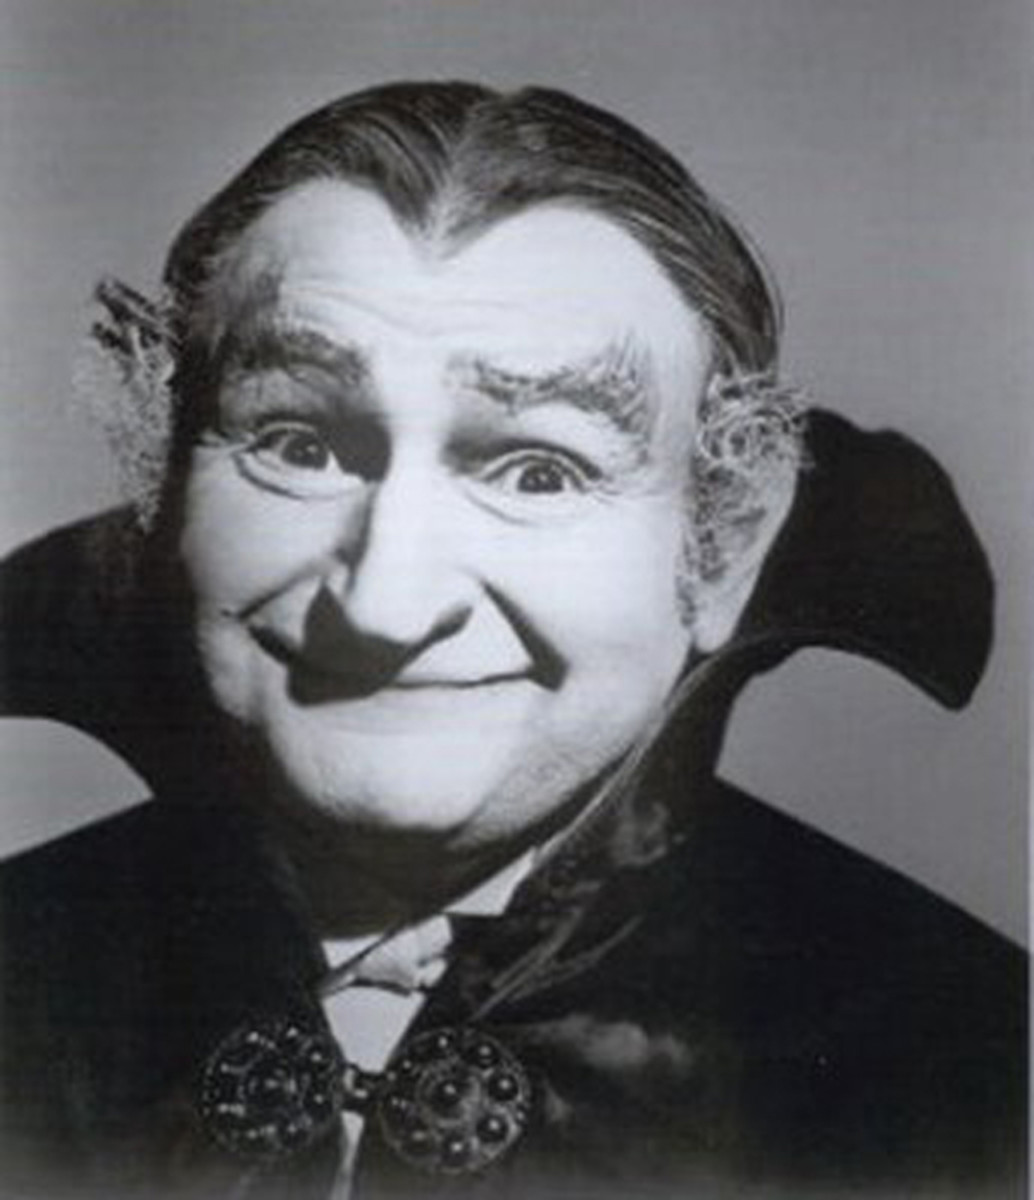 Al Lewis as the lovable Grandpa Munster.